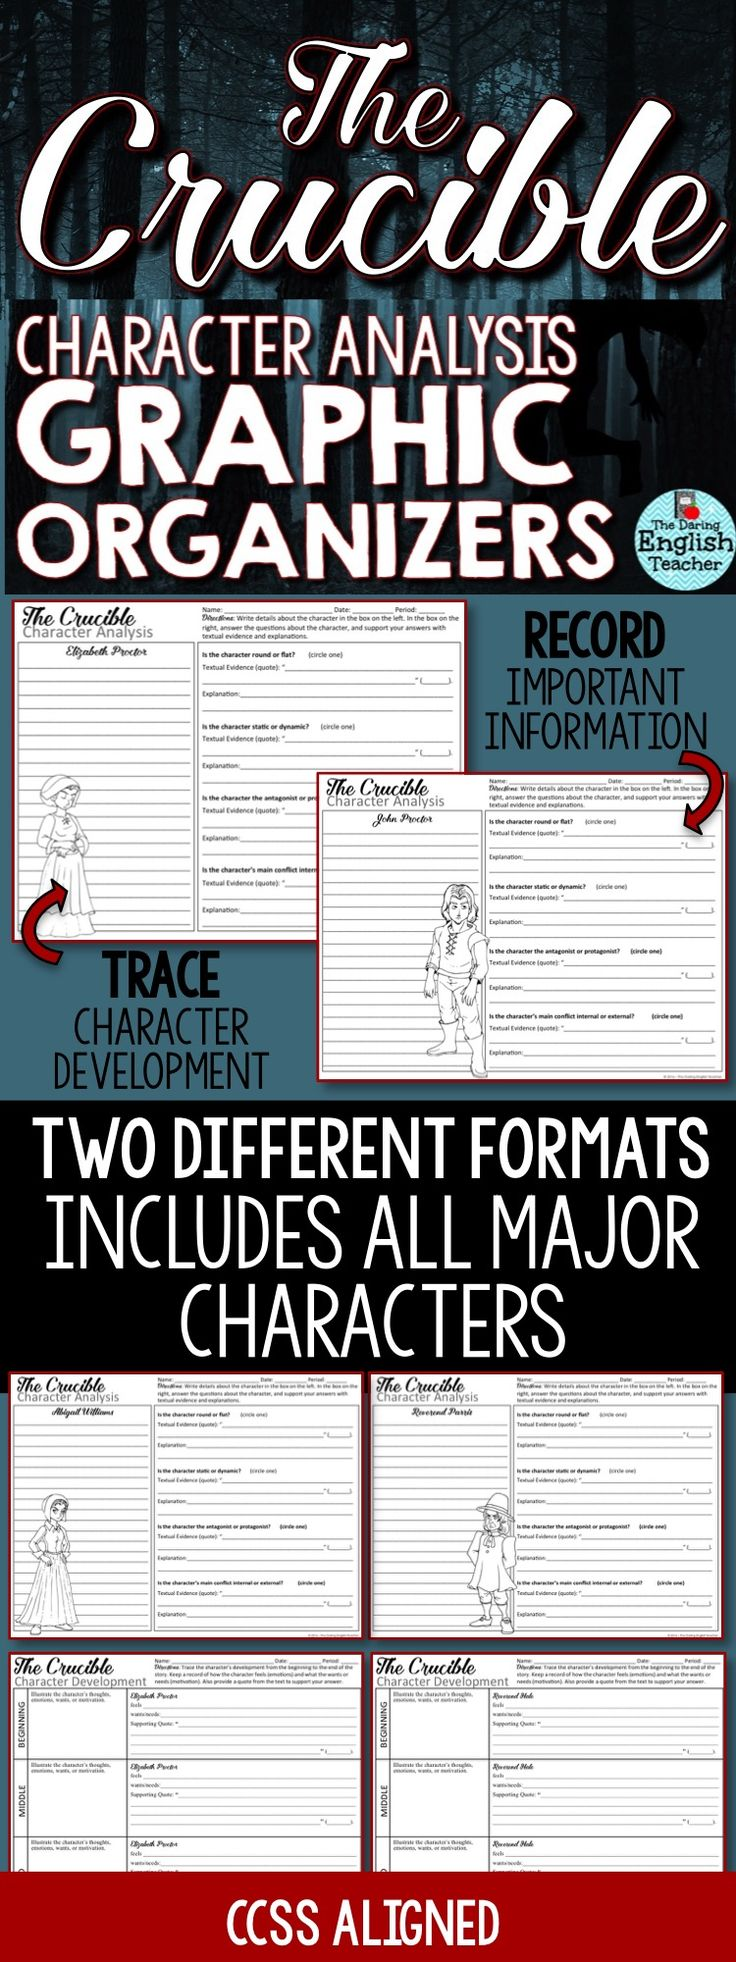 best ideas about the crucible character analysis engage your students these common core character analysis graphic organizers for the crucible ideal